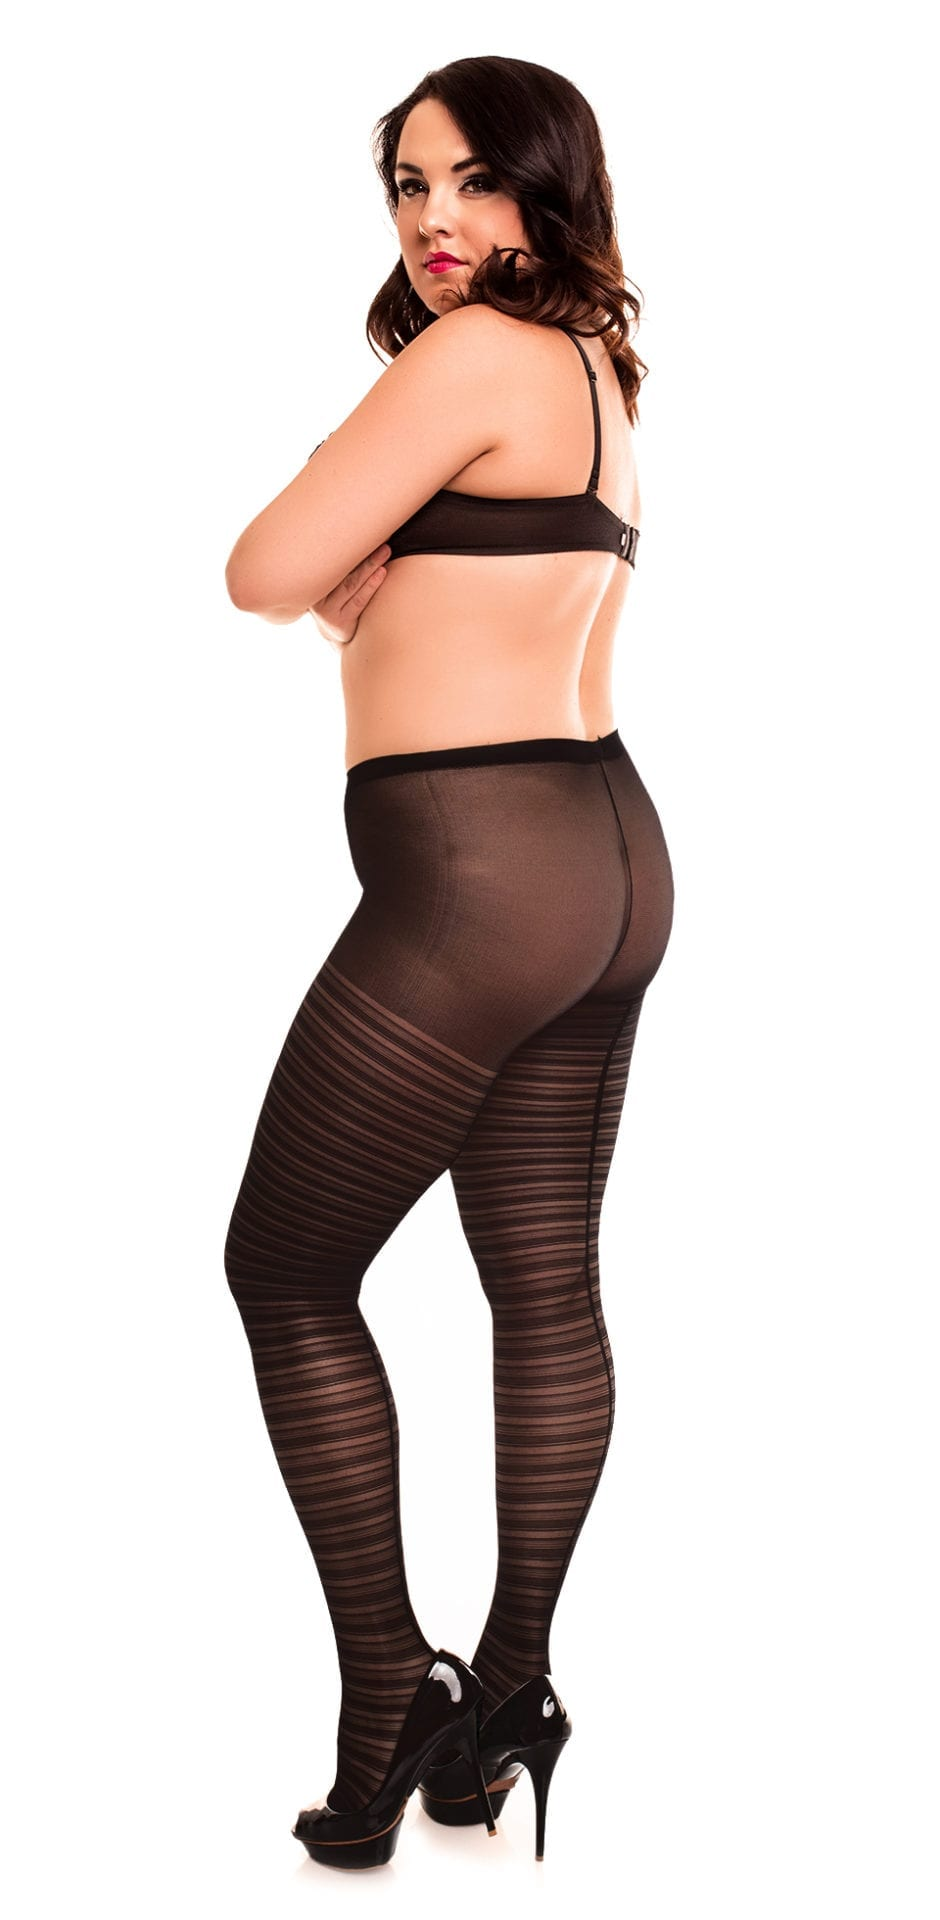 Glamory Saturnia 20 Patterned Tights 20 denier black back view full body